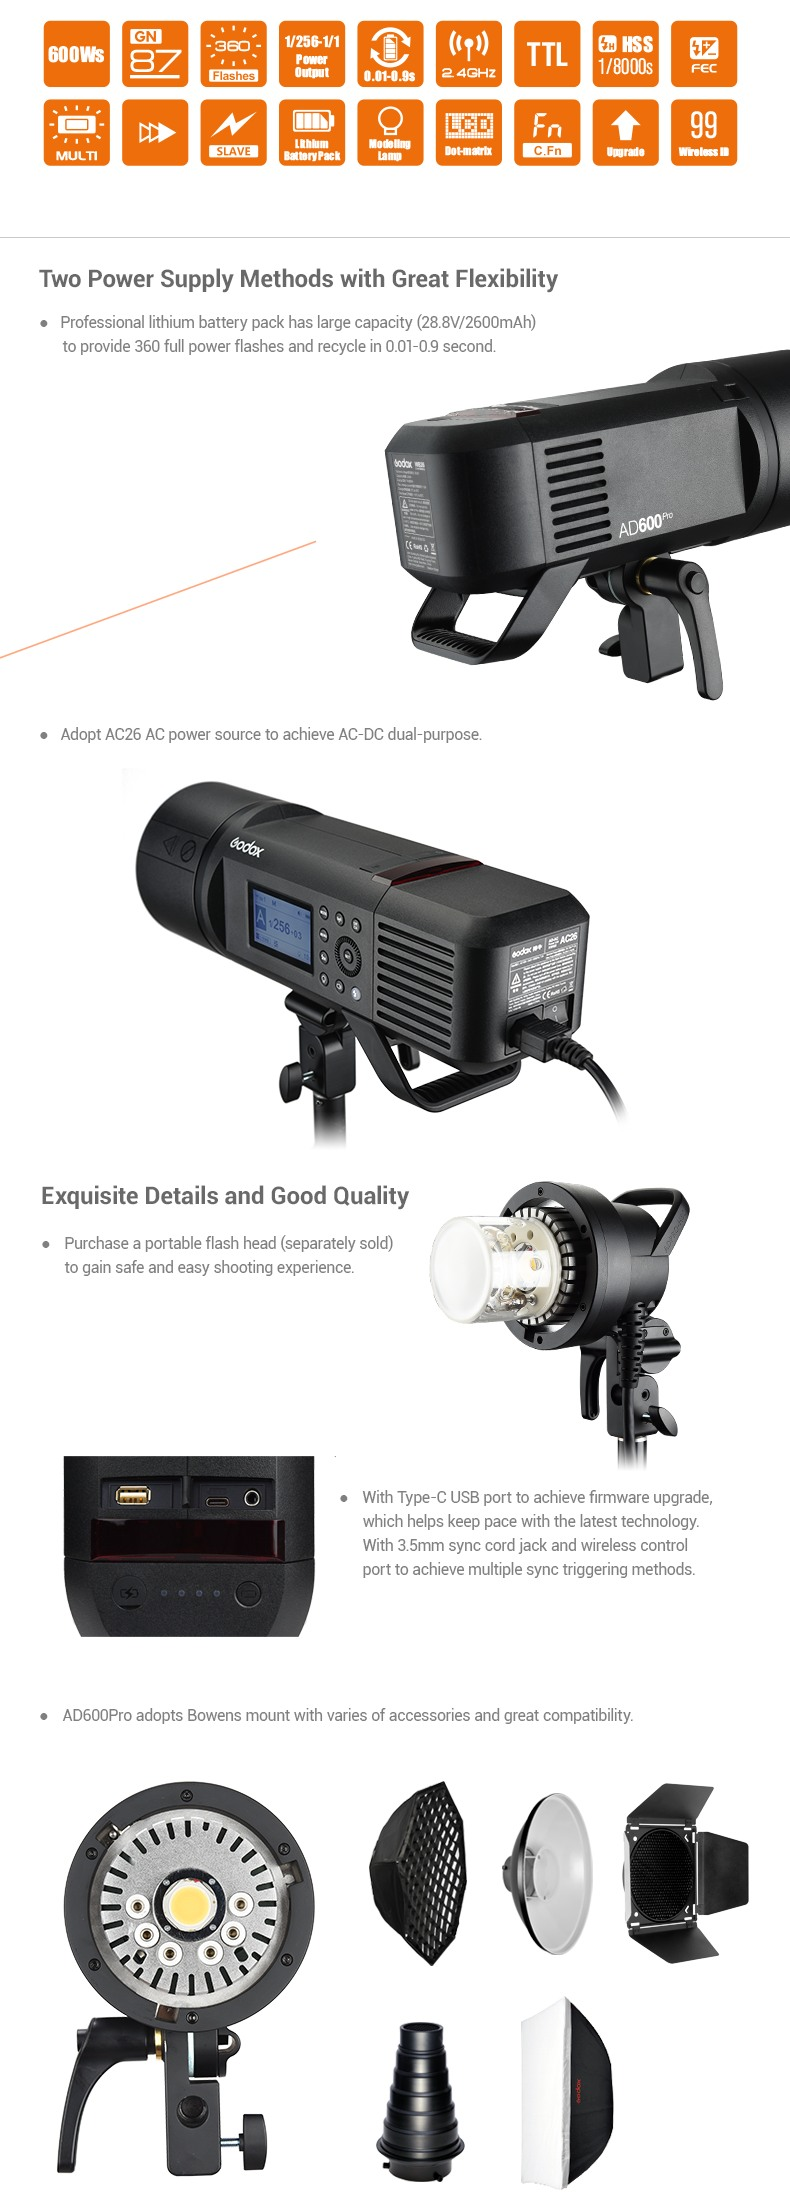 Godox AD600Pro Two power Supply Methods with great Flexibility. AC26 AC-DC power adapter. Dual Purpose. Exquisite Details and Good Quality. AD600Pro Bowens mount.